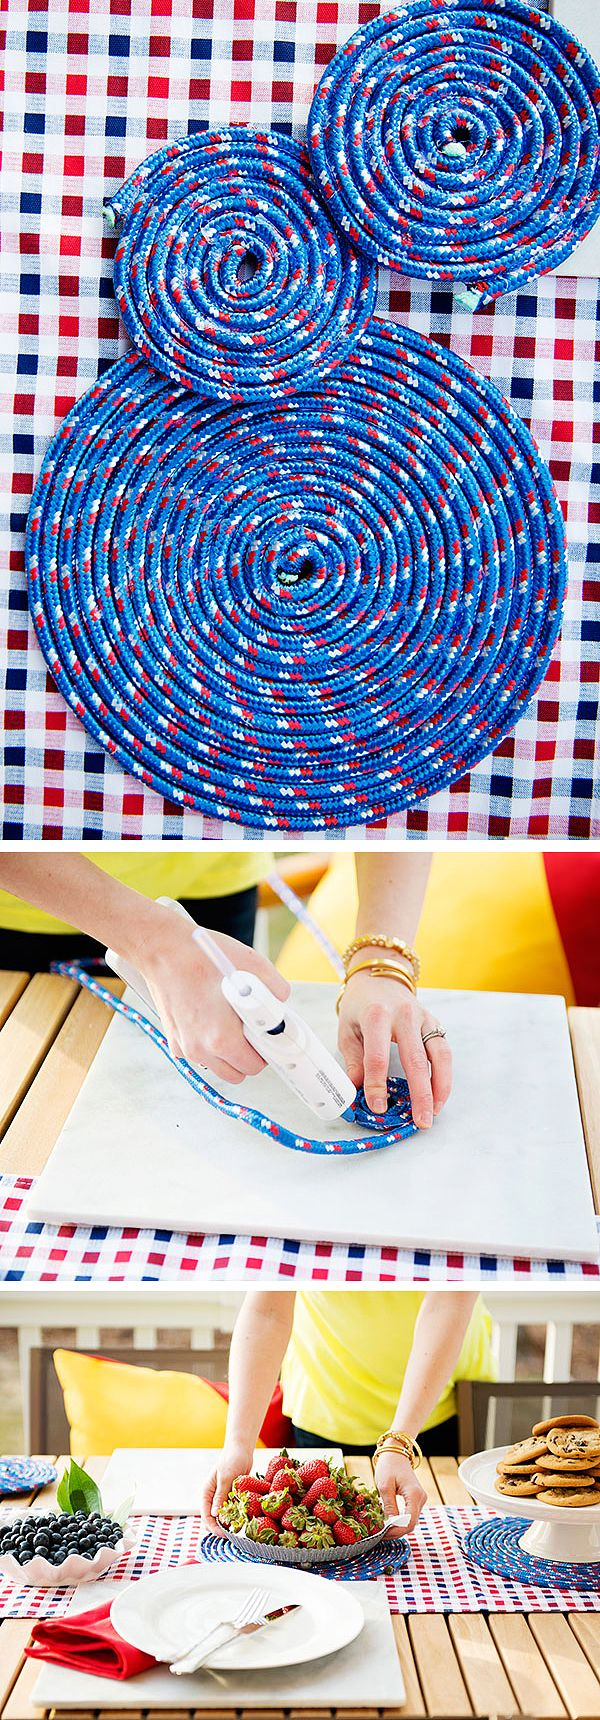 Nautical crafts to make - Alison Vinciguerra Of Long Distance Loving Used Poly Rope And A Hot Glue Gun To Make